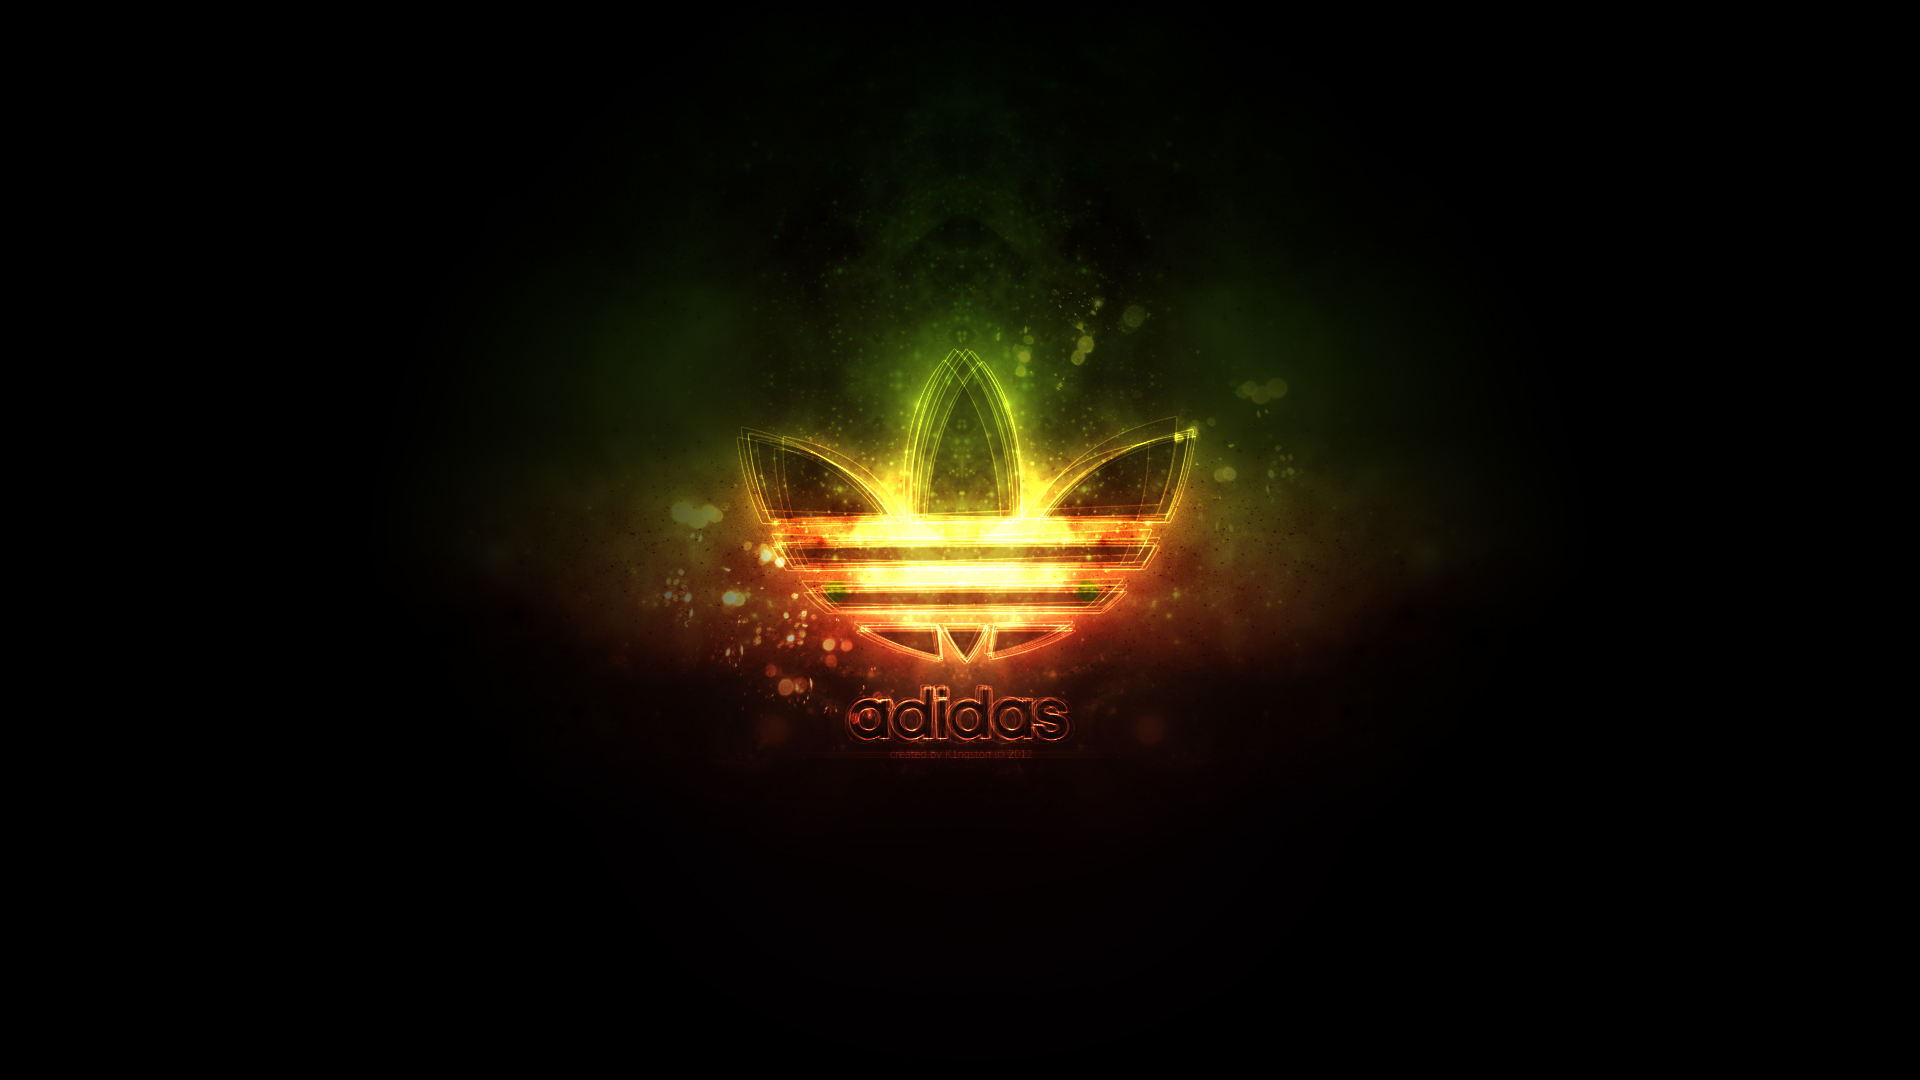 Wallpaper Cool Latest New Adidas Logo Wallpapers HD Quality 1920x1080